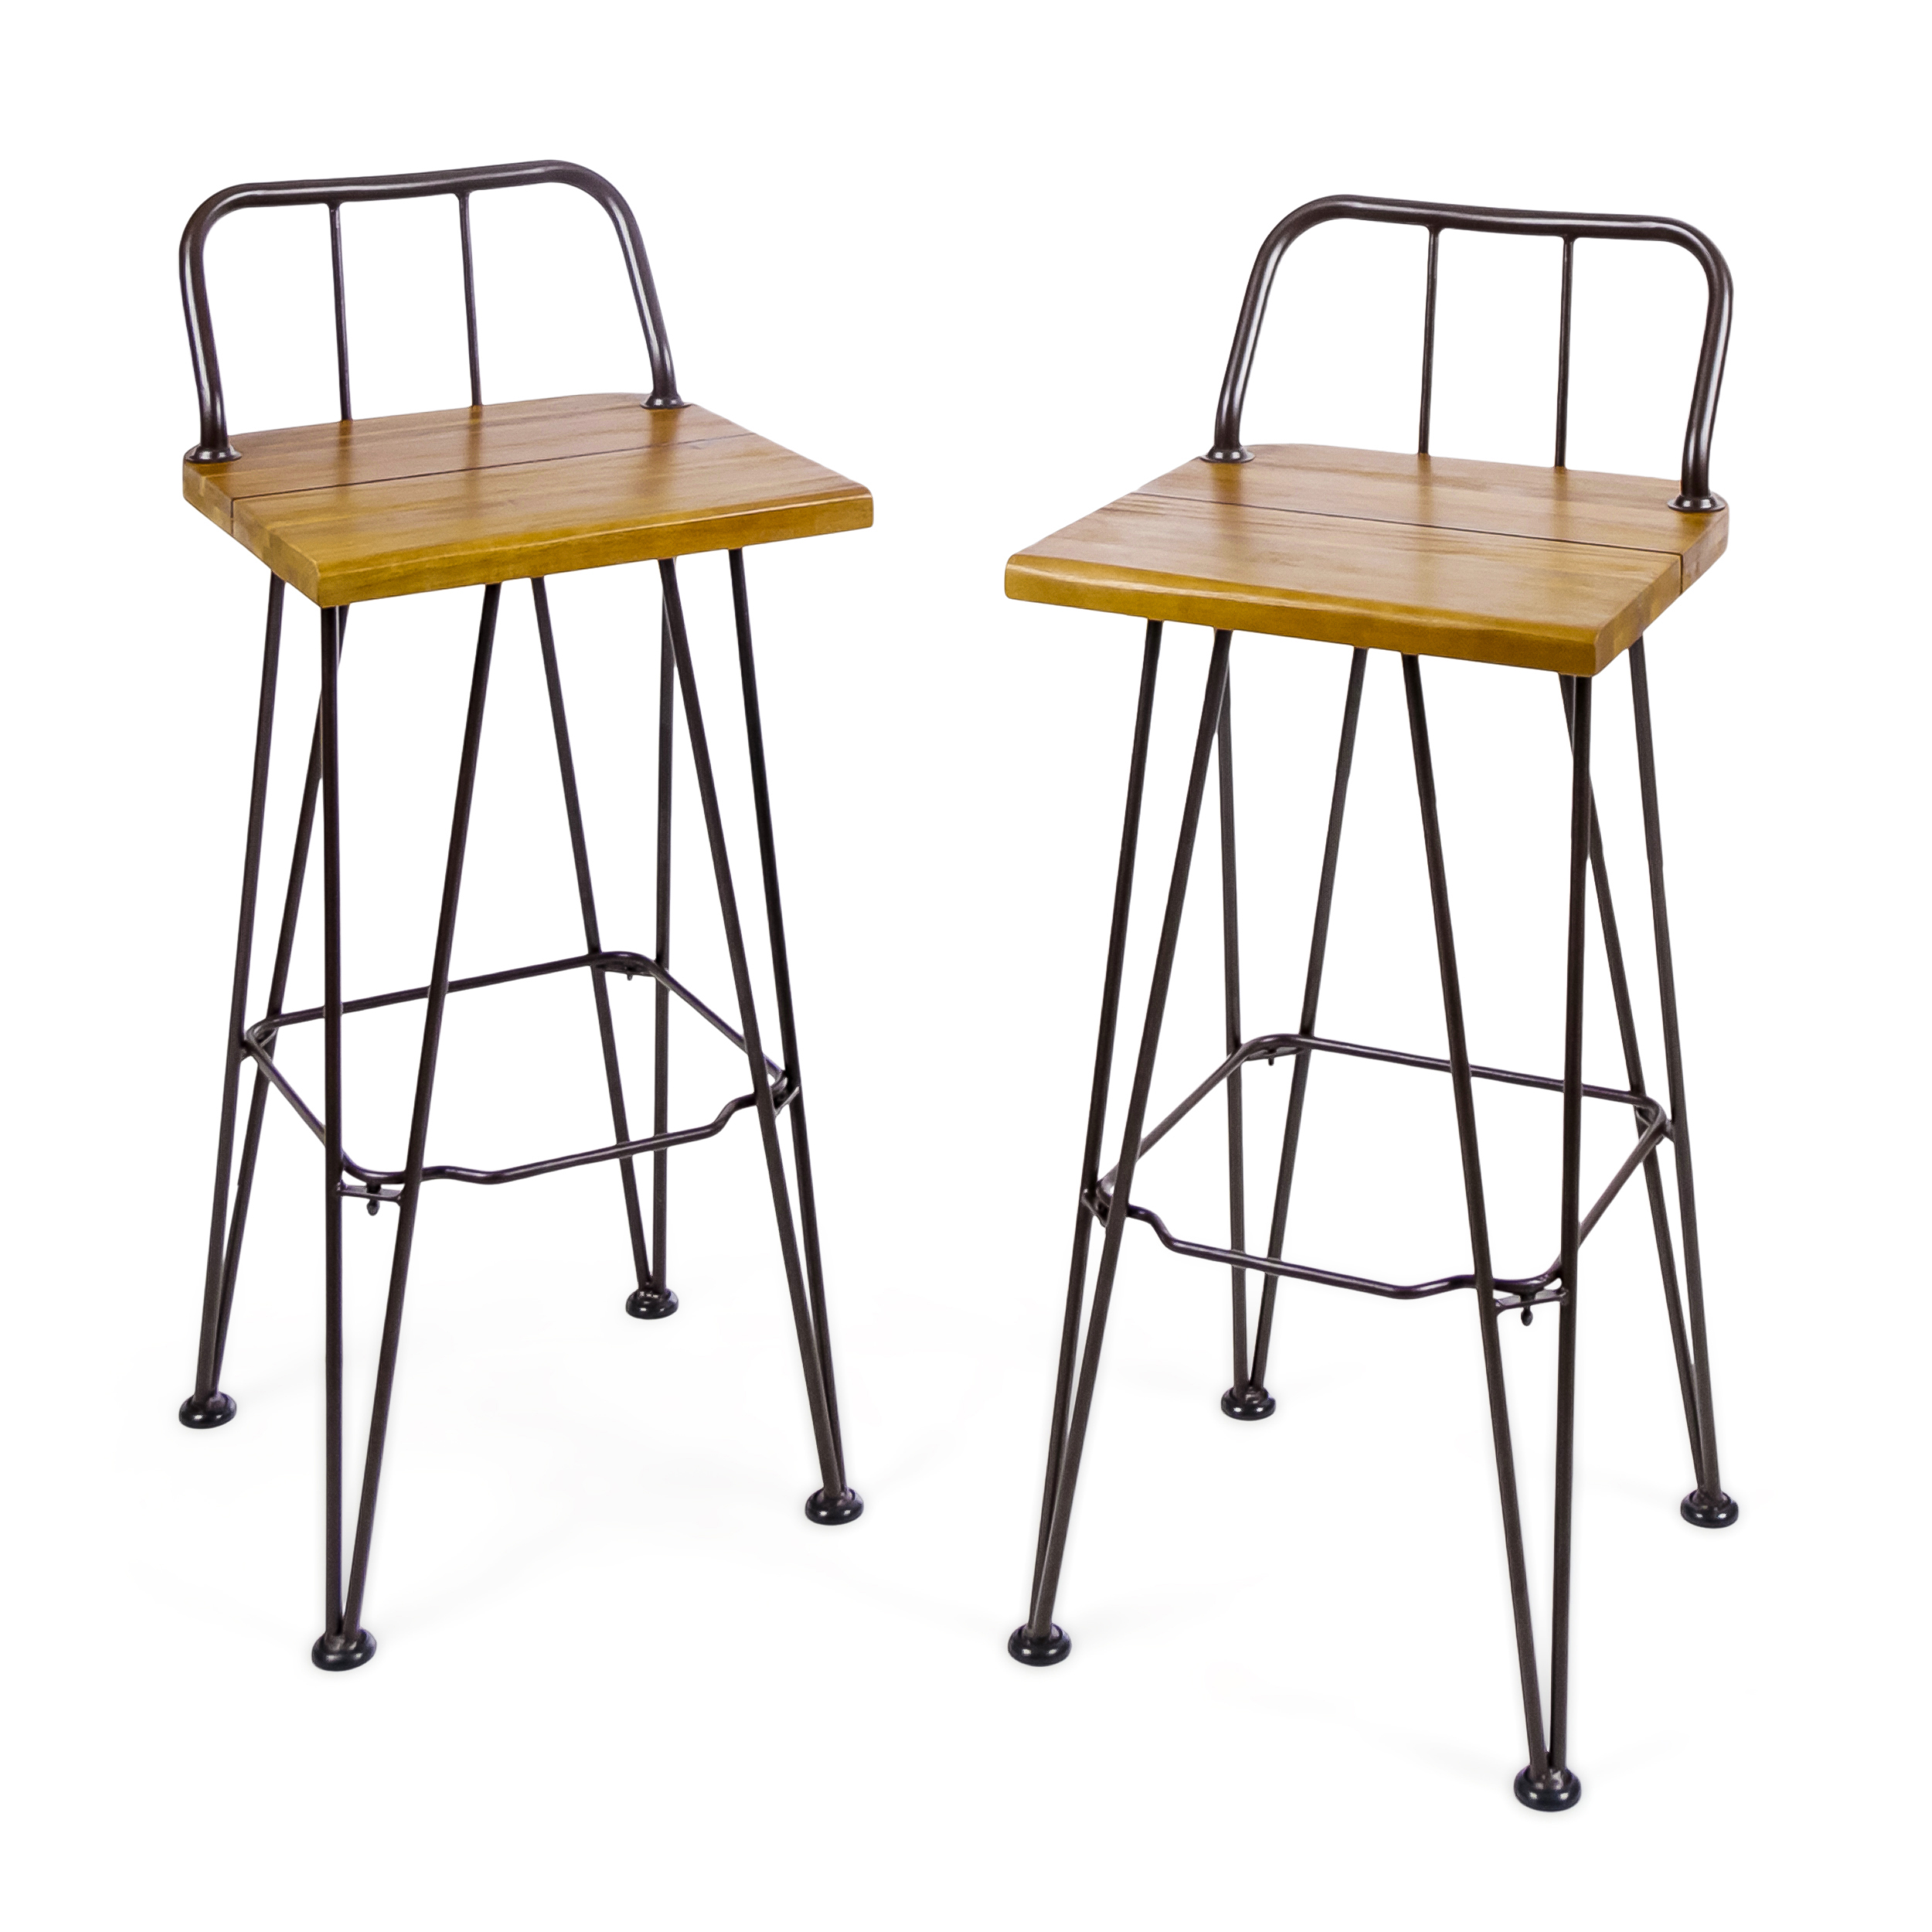 Leonardo Outdoor Industrial Acacia Wood Barstools with Iron Frame, Set of 2, Teak and Rustic Metal